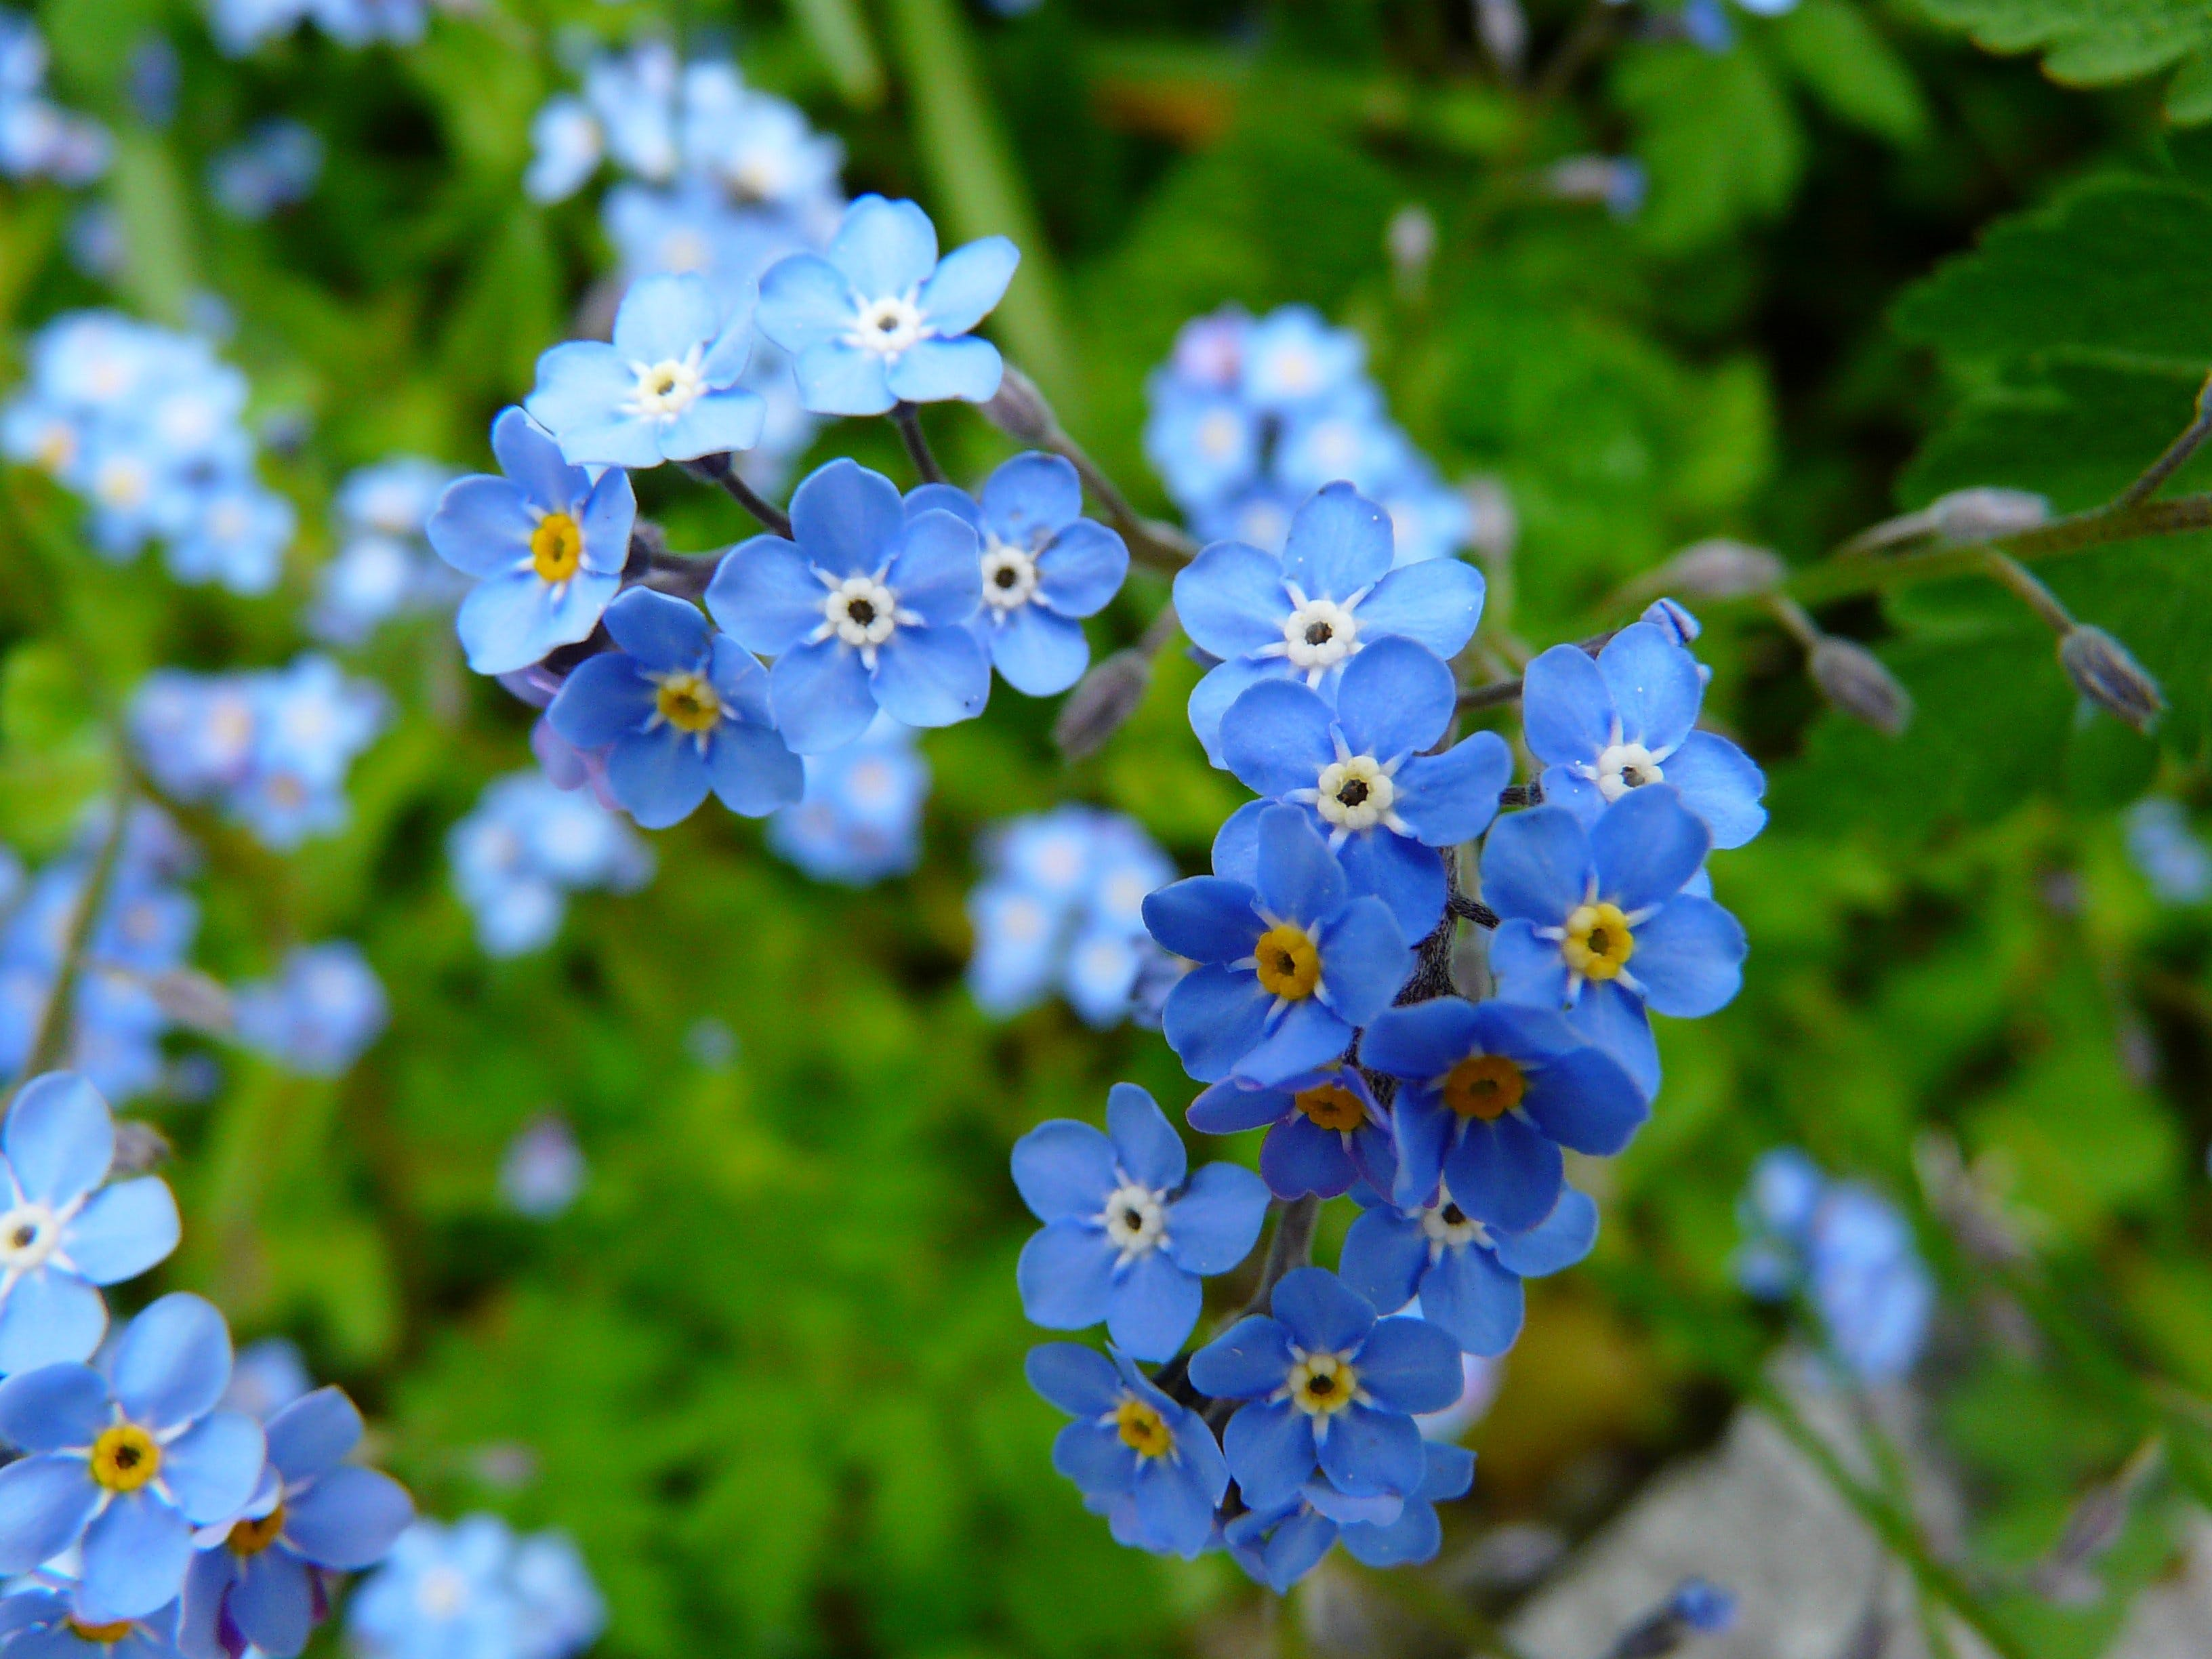 Blue 5 Petaled Flowers